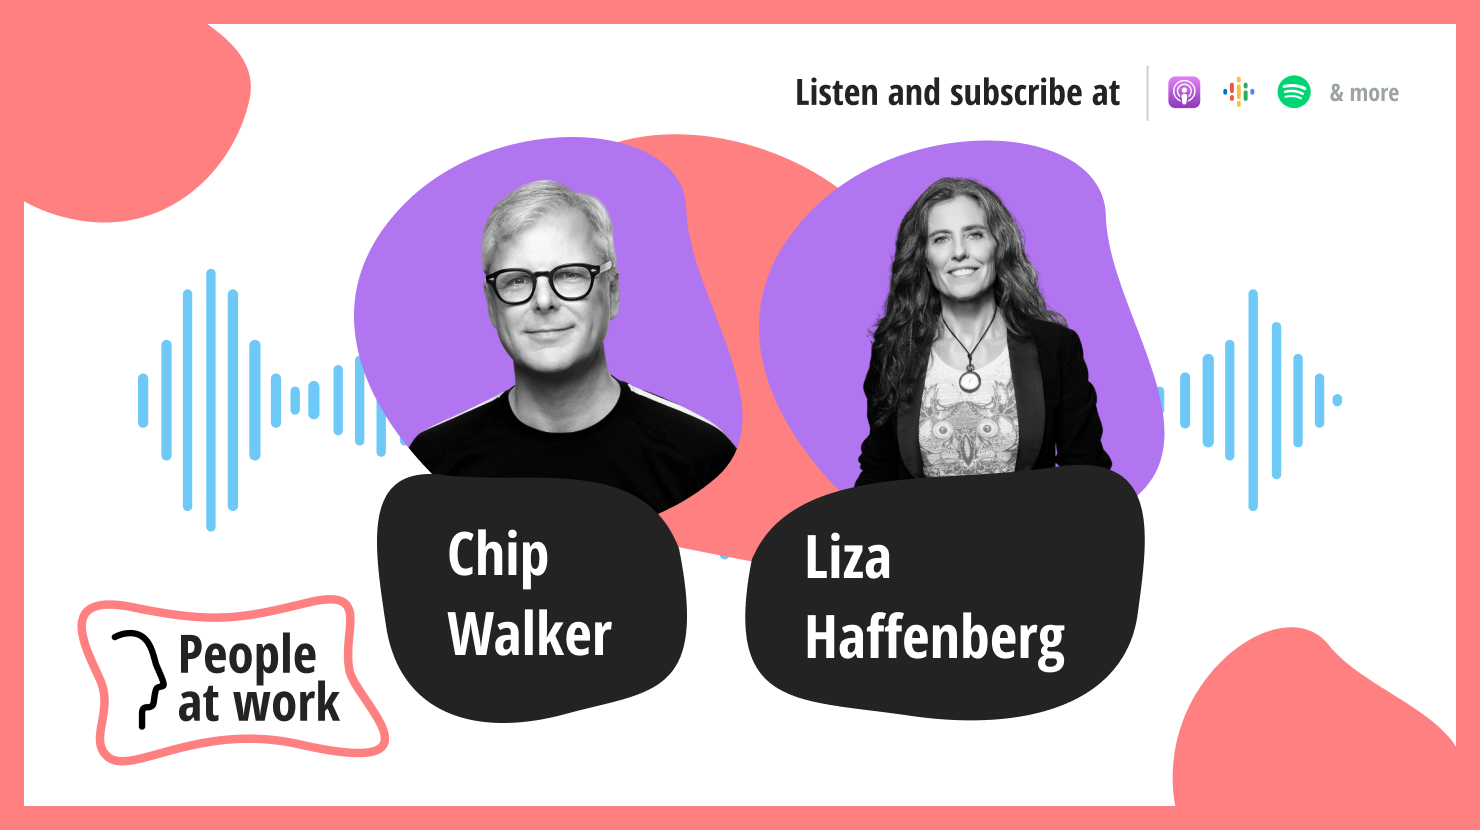 Don't have a purpose, create a movement with Chip Walker and Liza Haffenberg